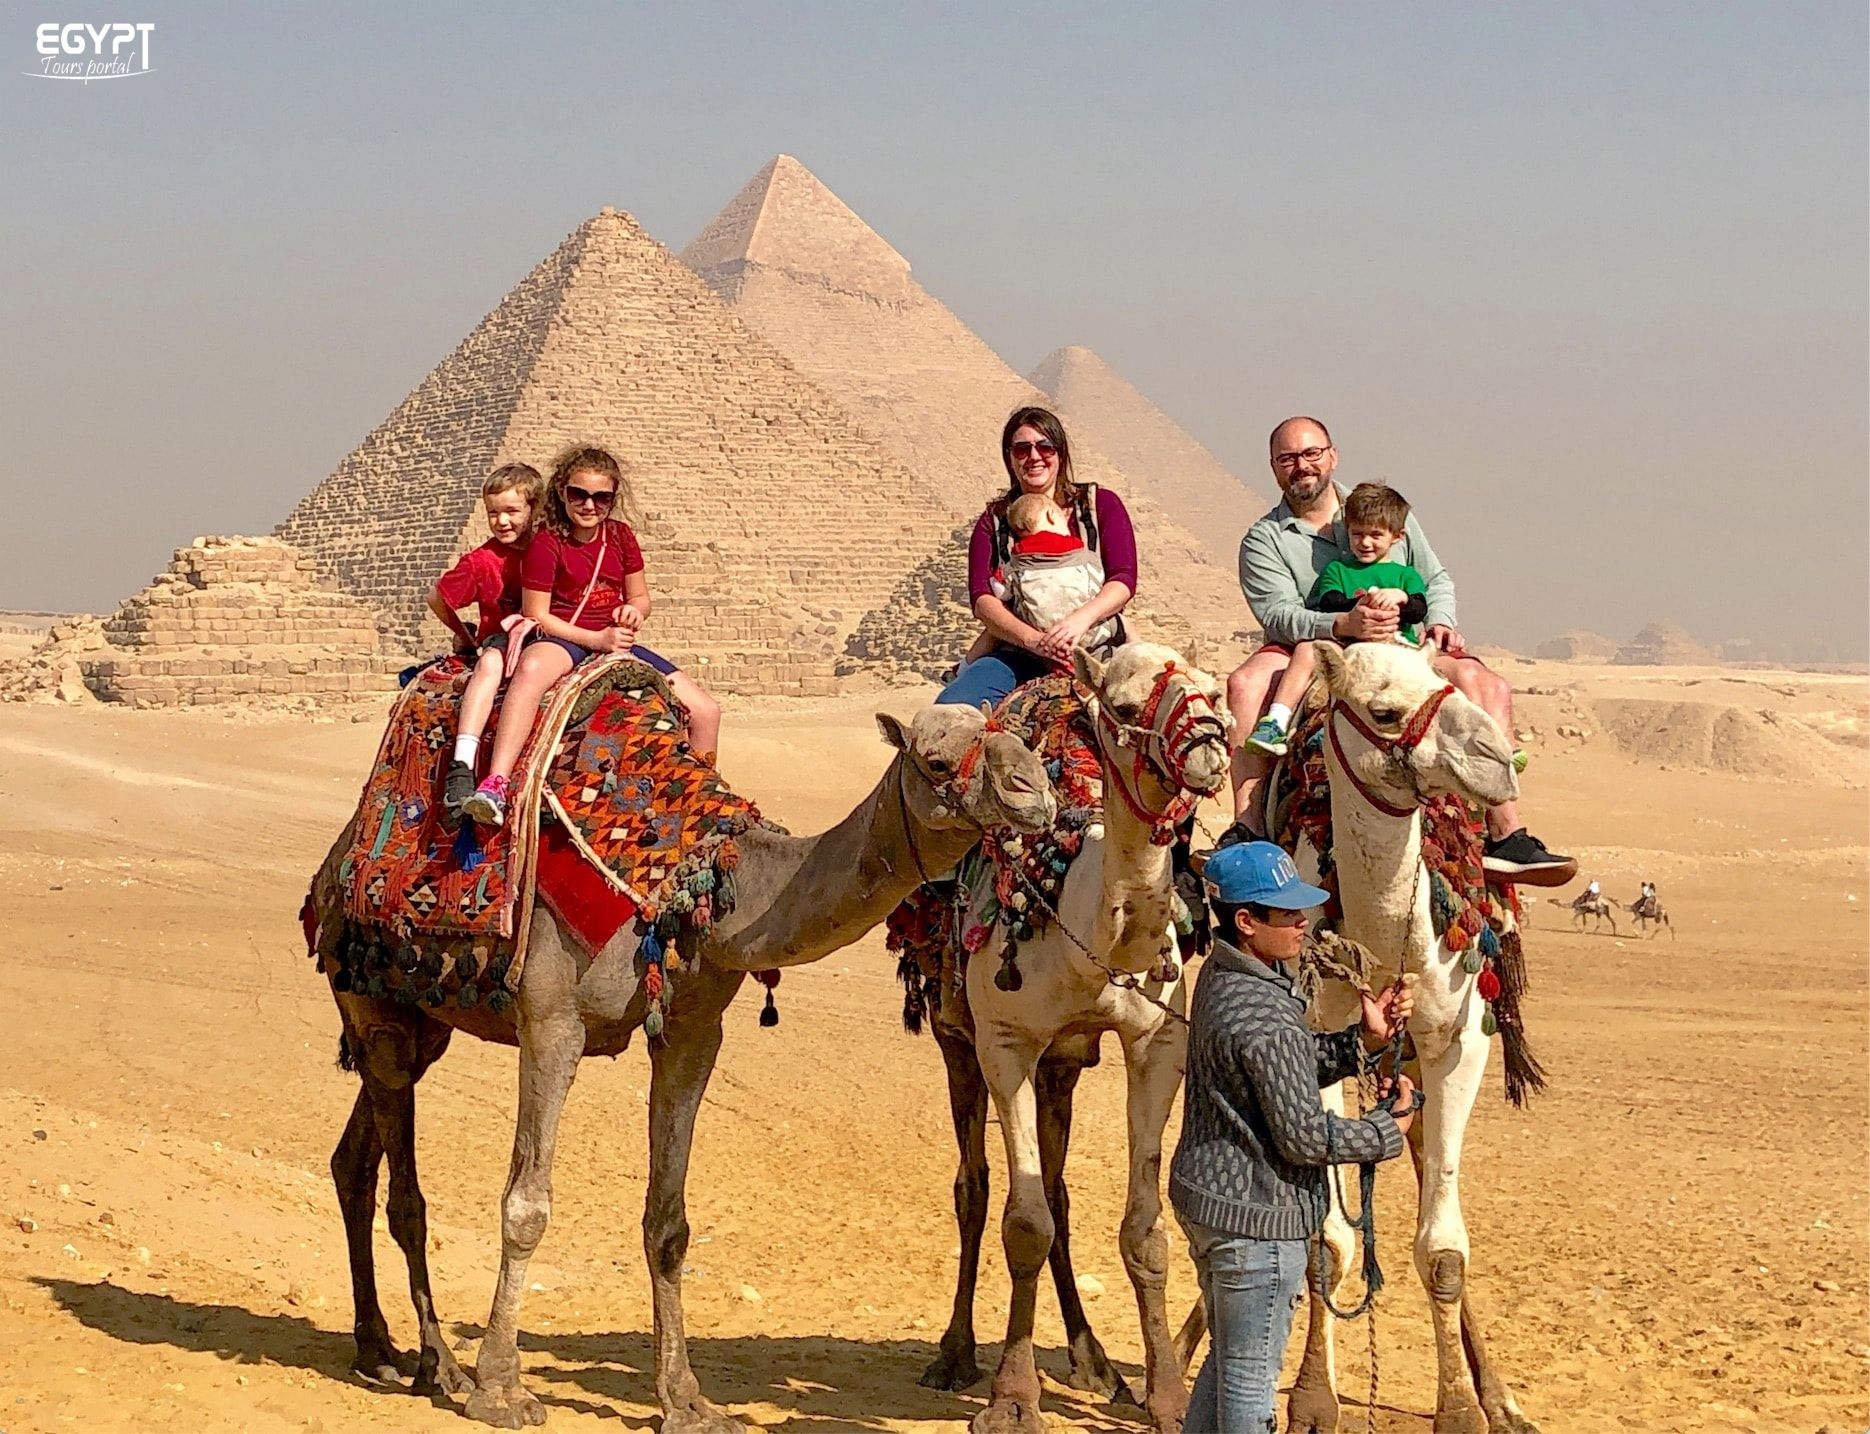 After Years Of Hard Work Egypt Was Able To Rank Fourth In Growth Averages Worldwide In The Travel Tourism Competiti Egypt Egypt Travel Travel And Tourism